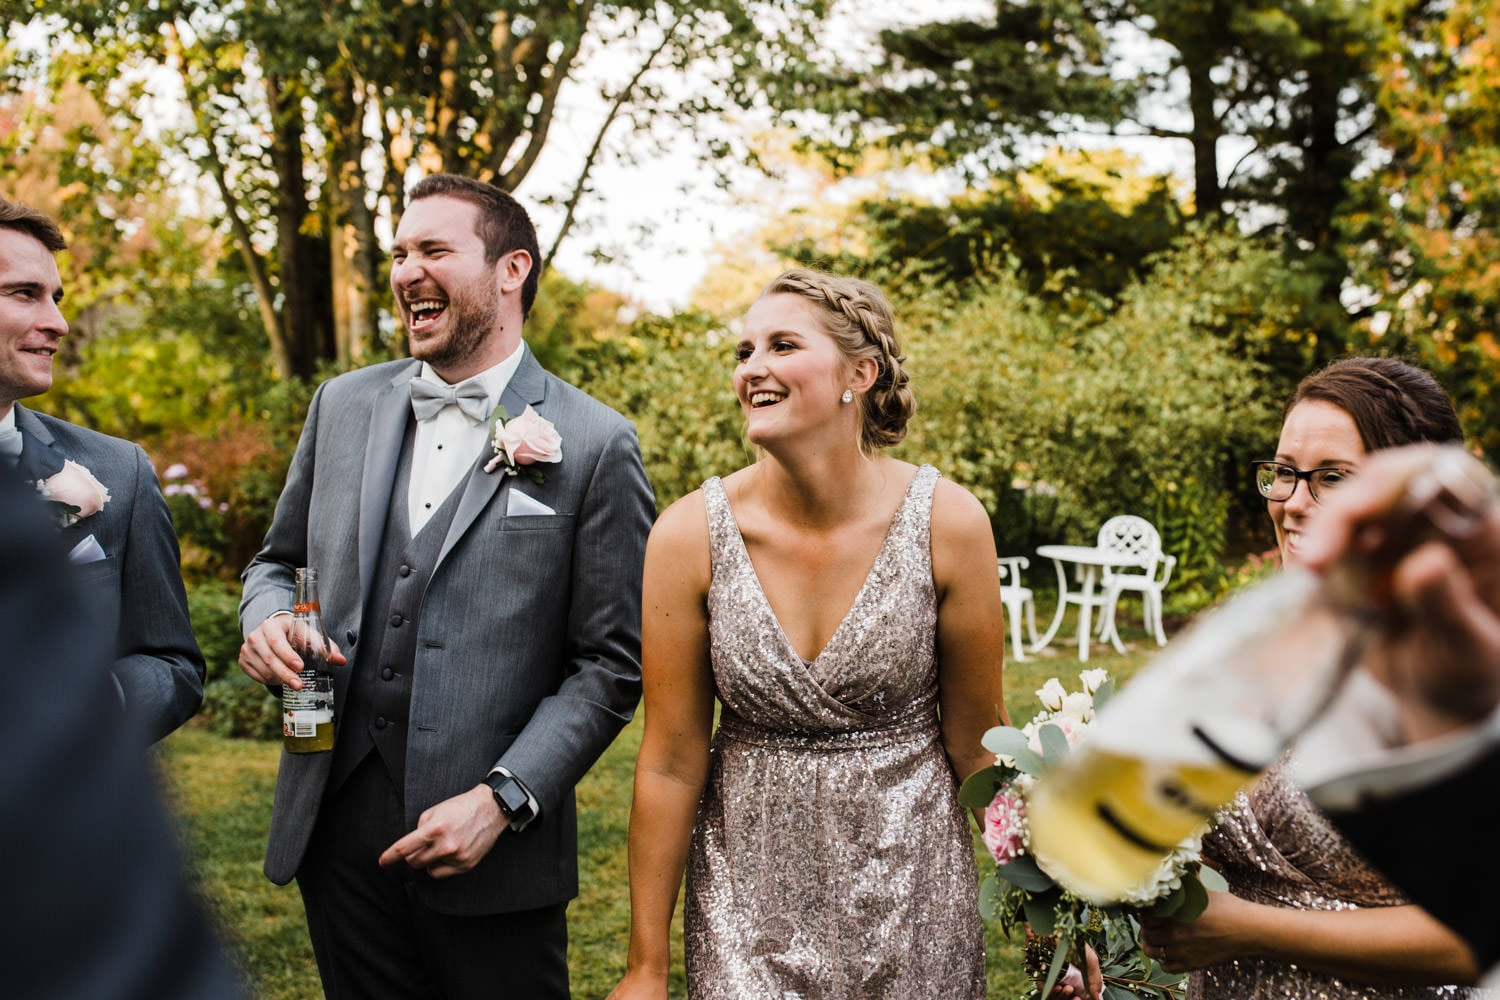 wedding party laughs together in the garden - strathmere summer wedding